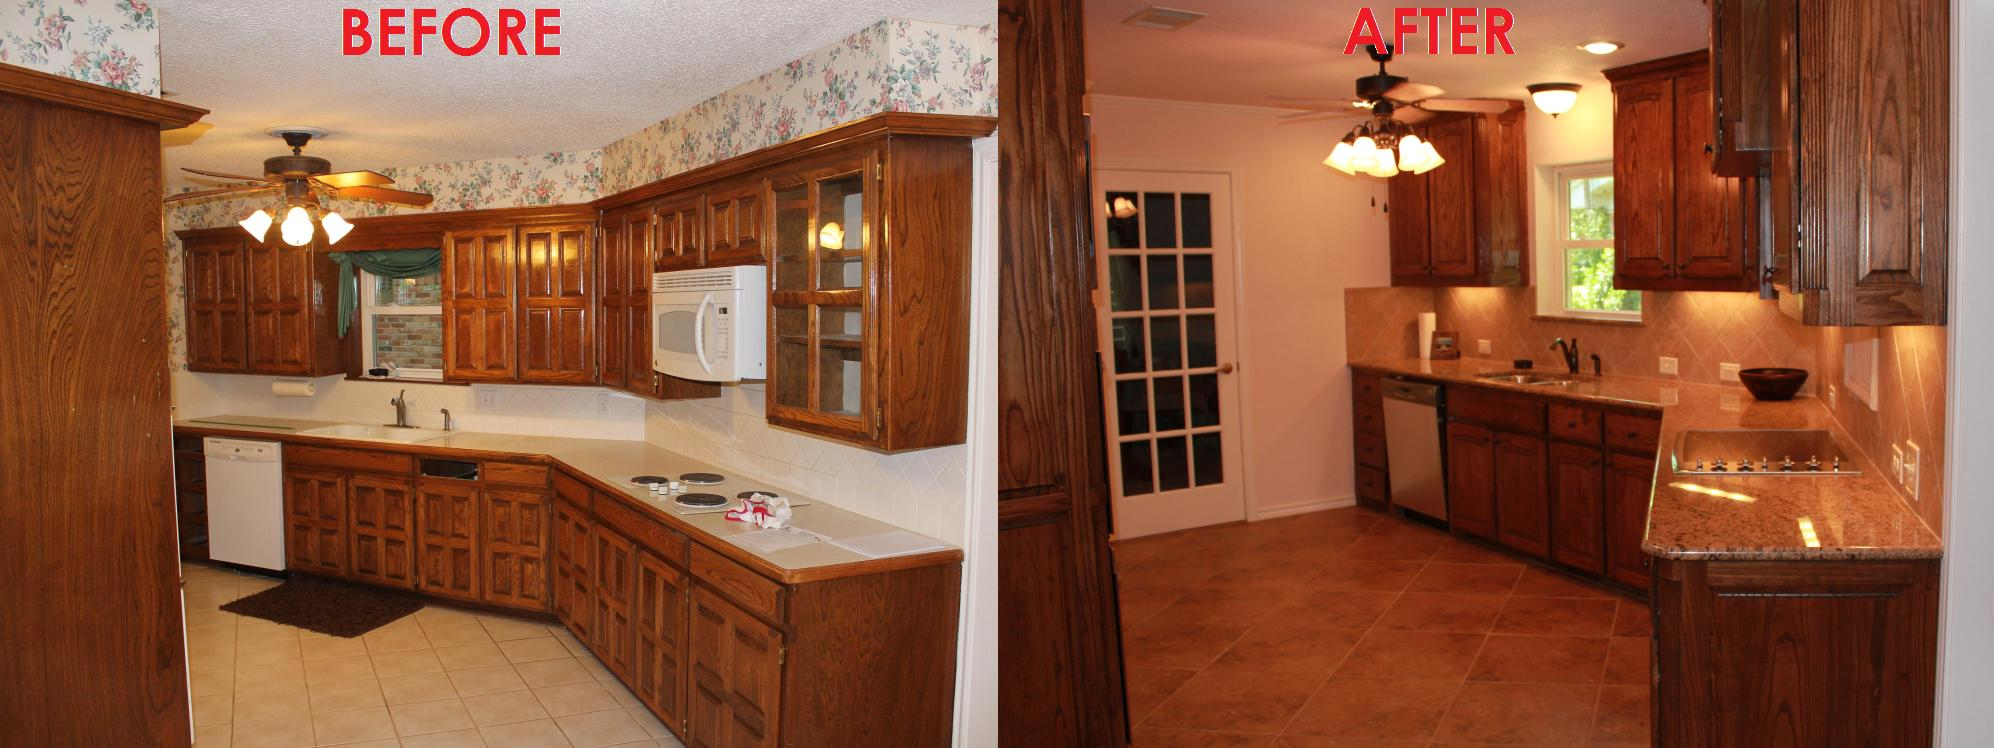 Before And After Kitchen Remodel Interior small kitchen remodel before and after for stunning and fresh